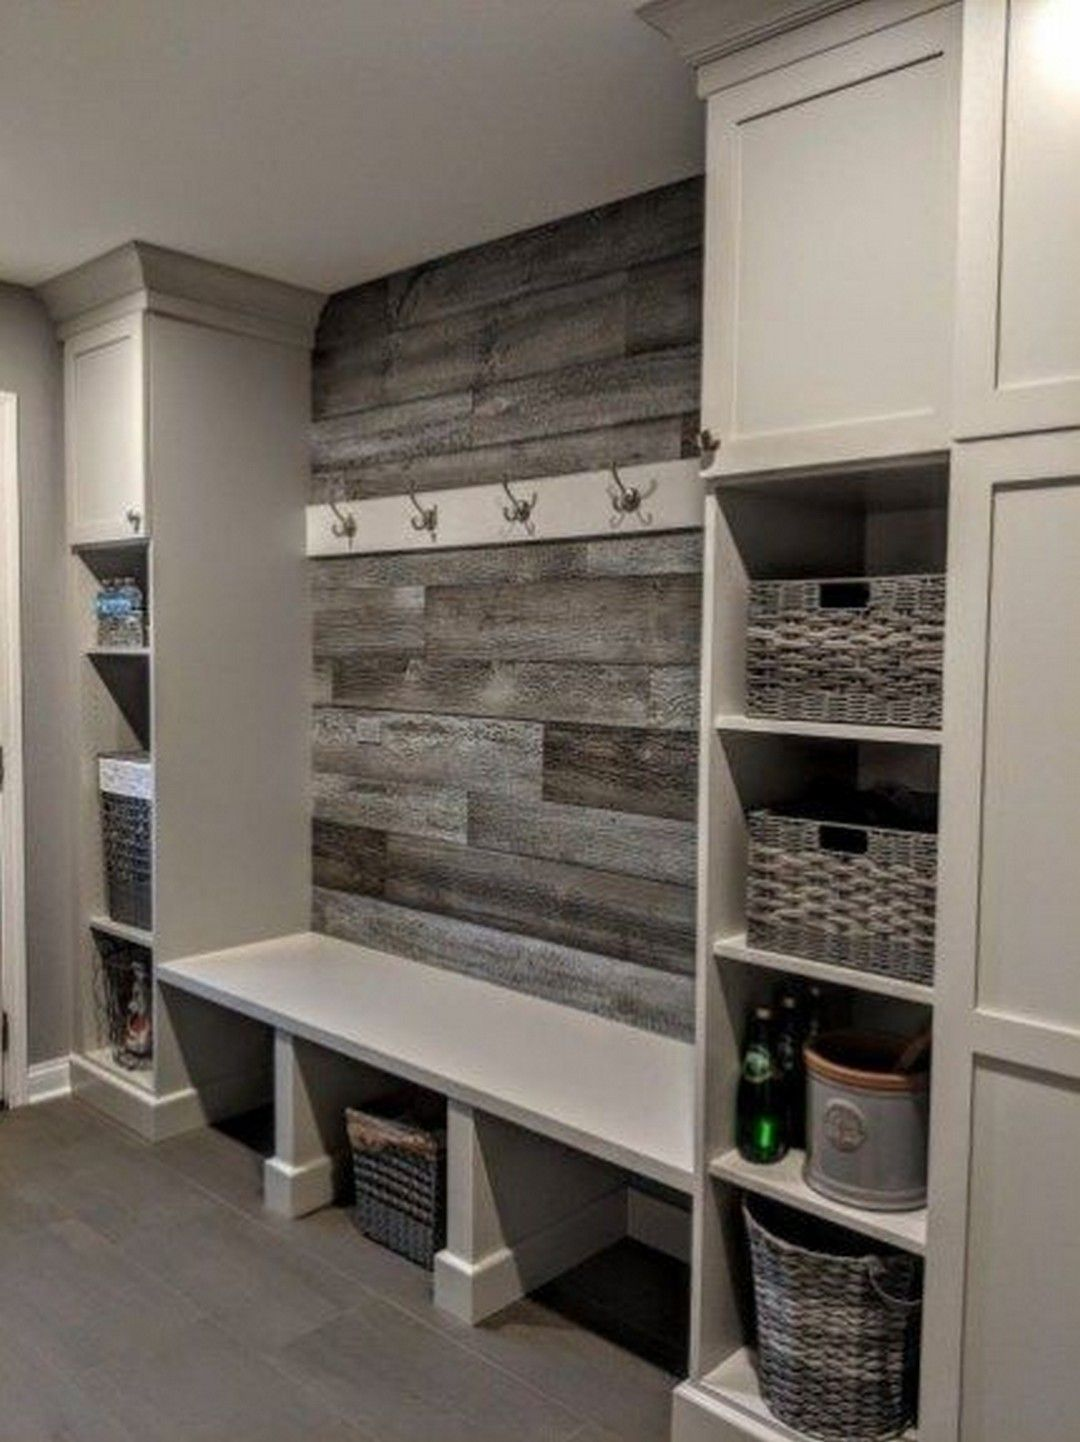 25 DIY Laundry Room Shiplap and Shelving images